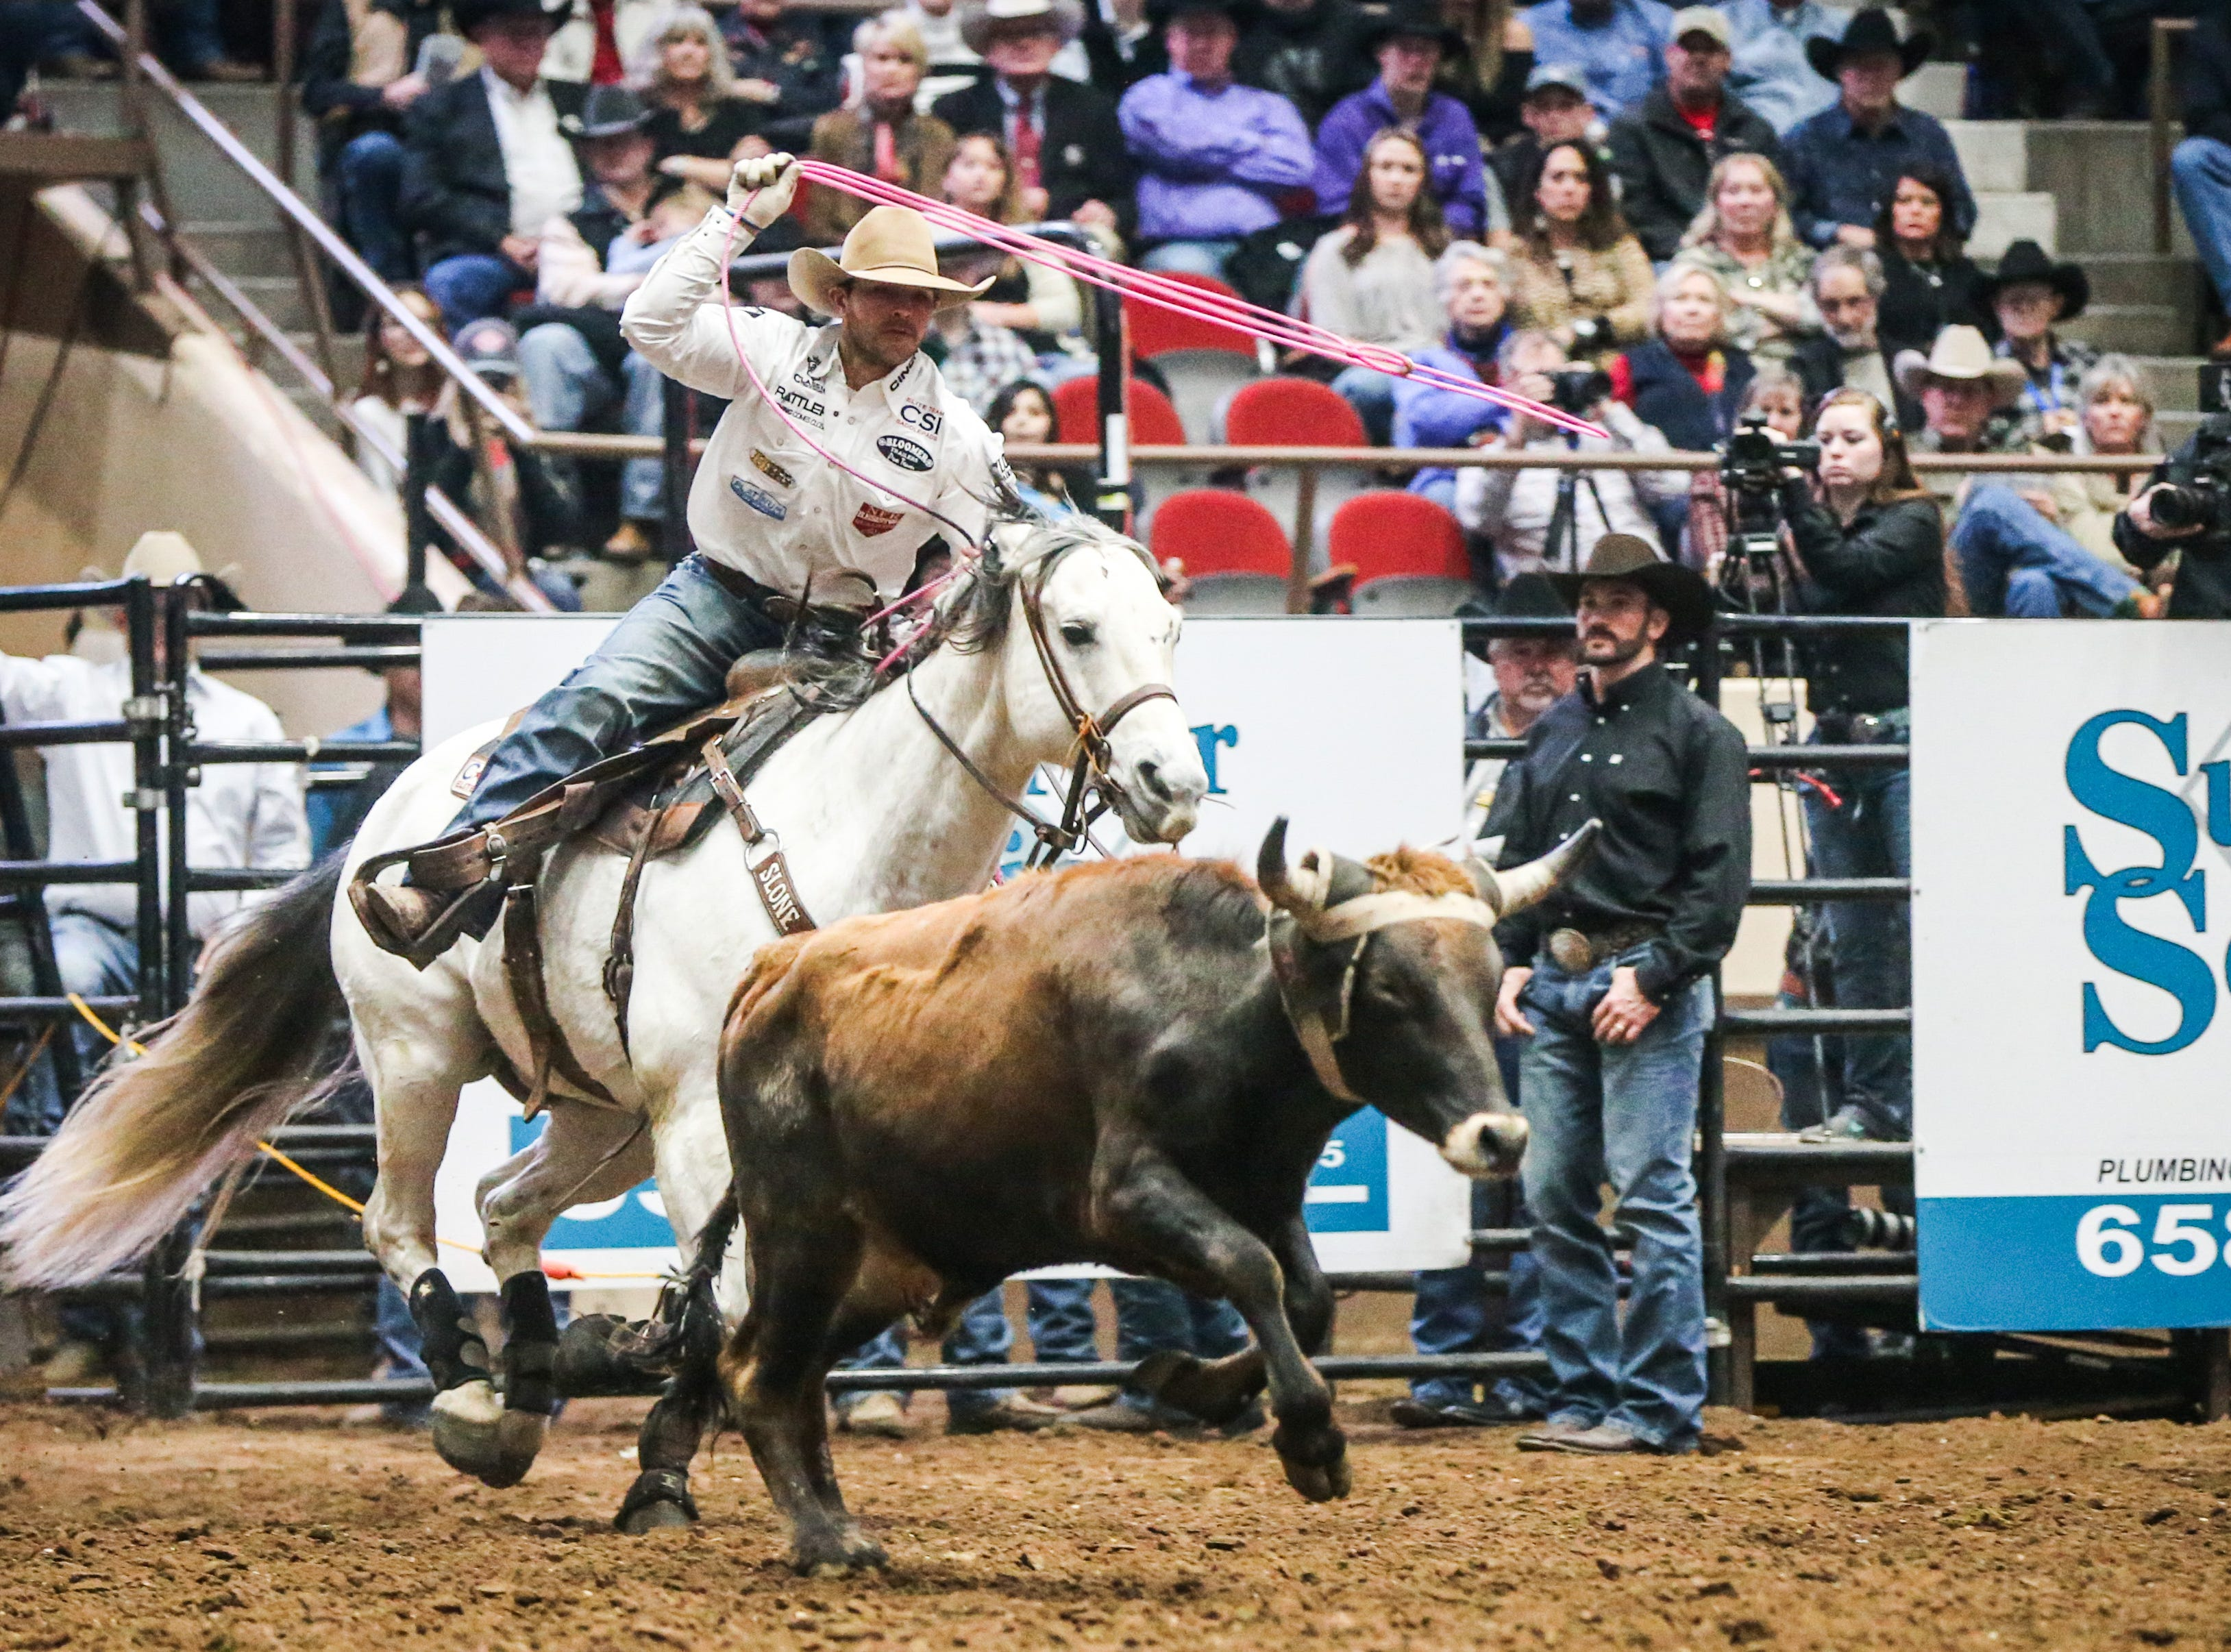 Clay Smith throws his rope during team roping with Paul Eaves during Cinch Chute Out Saturday, Feb. 16, 2019, at Foster Communications Coliseum.